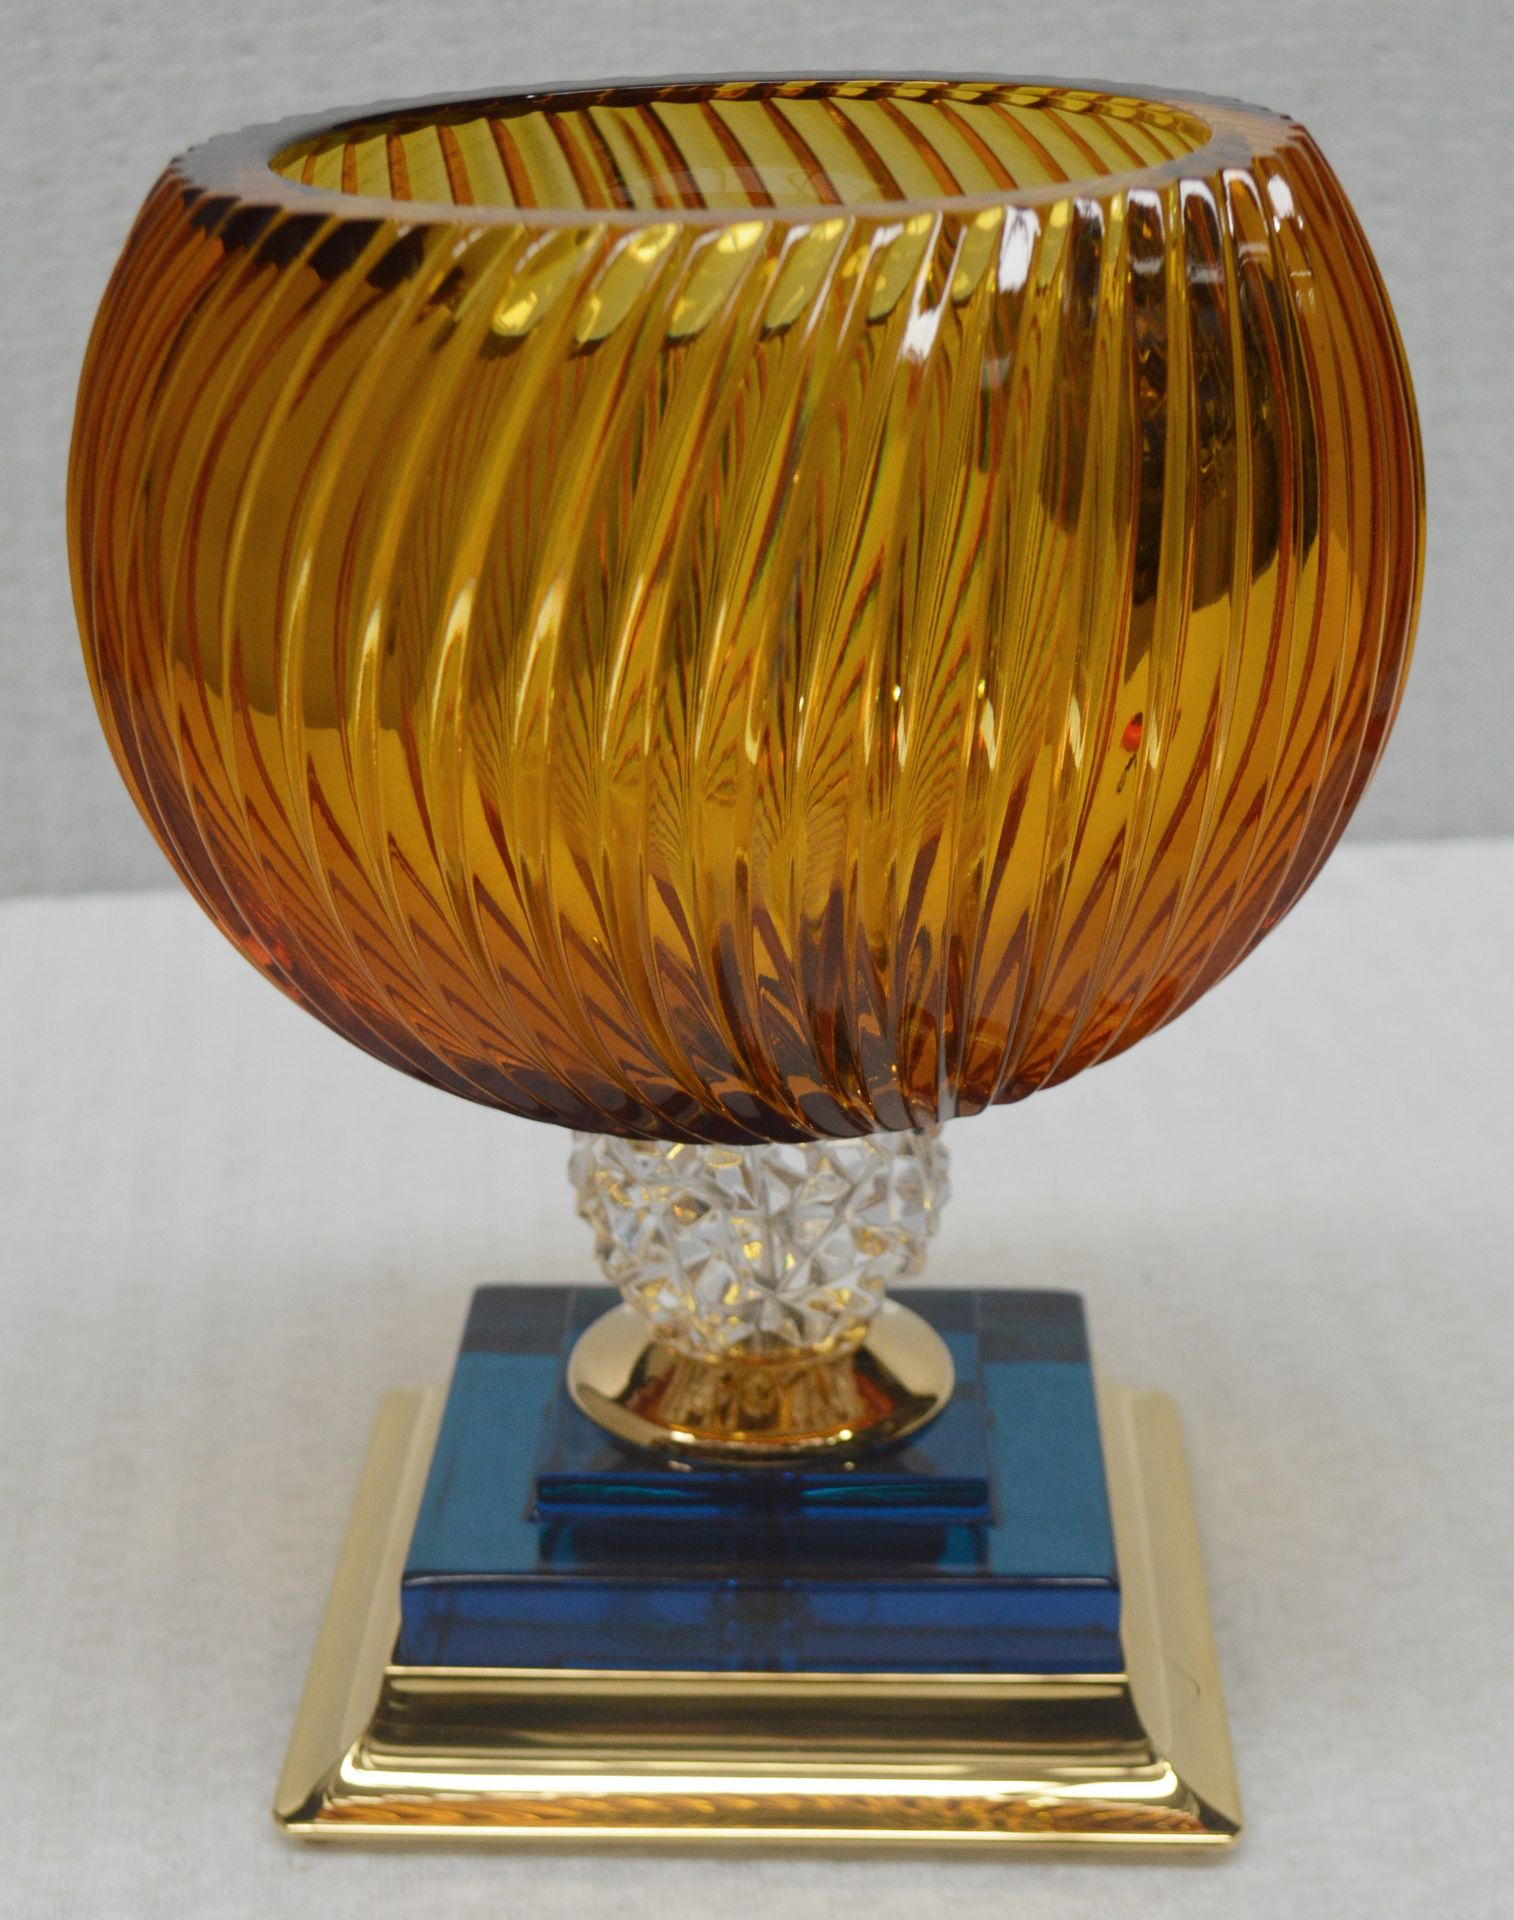 1 x BALDI 'Home Jewels' Italian Hand-crafted Artisan Coccinella Cup, In Orange & Blue Charme - Image 3 of 5